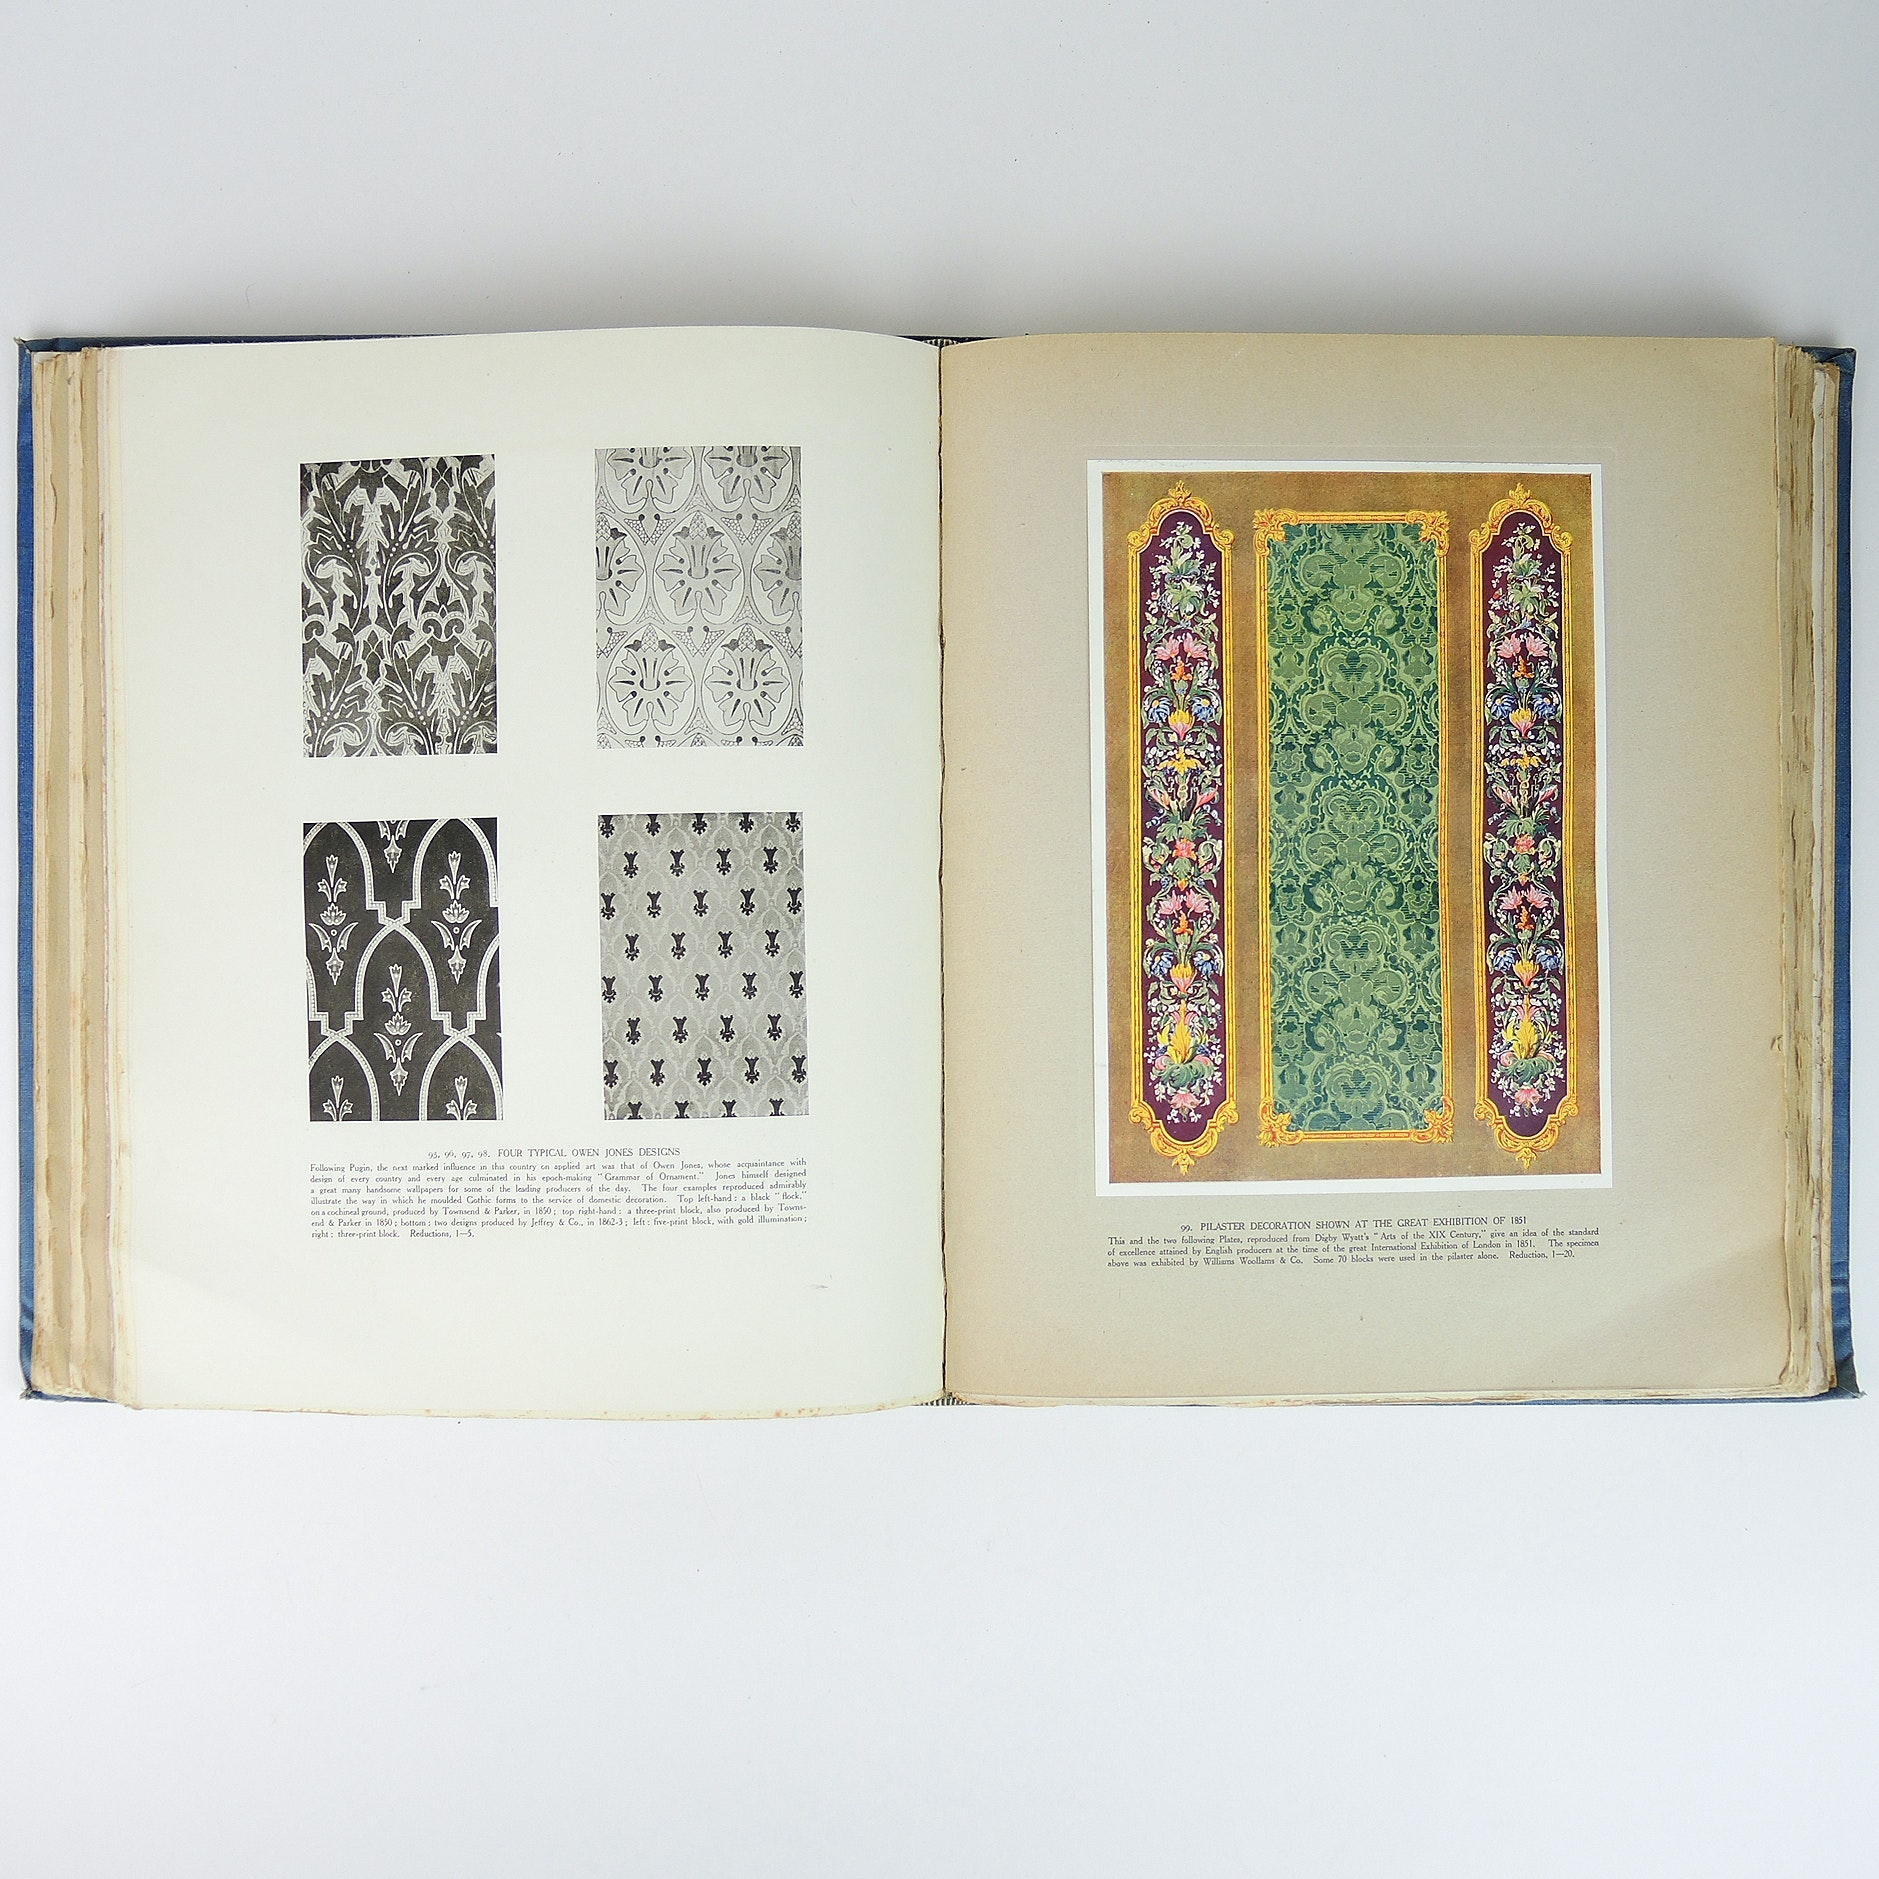 """Vintage Copy of """"A History of English Wallpaper"""" with Illustrations"""